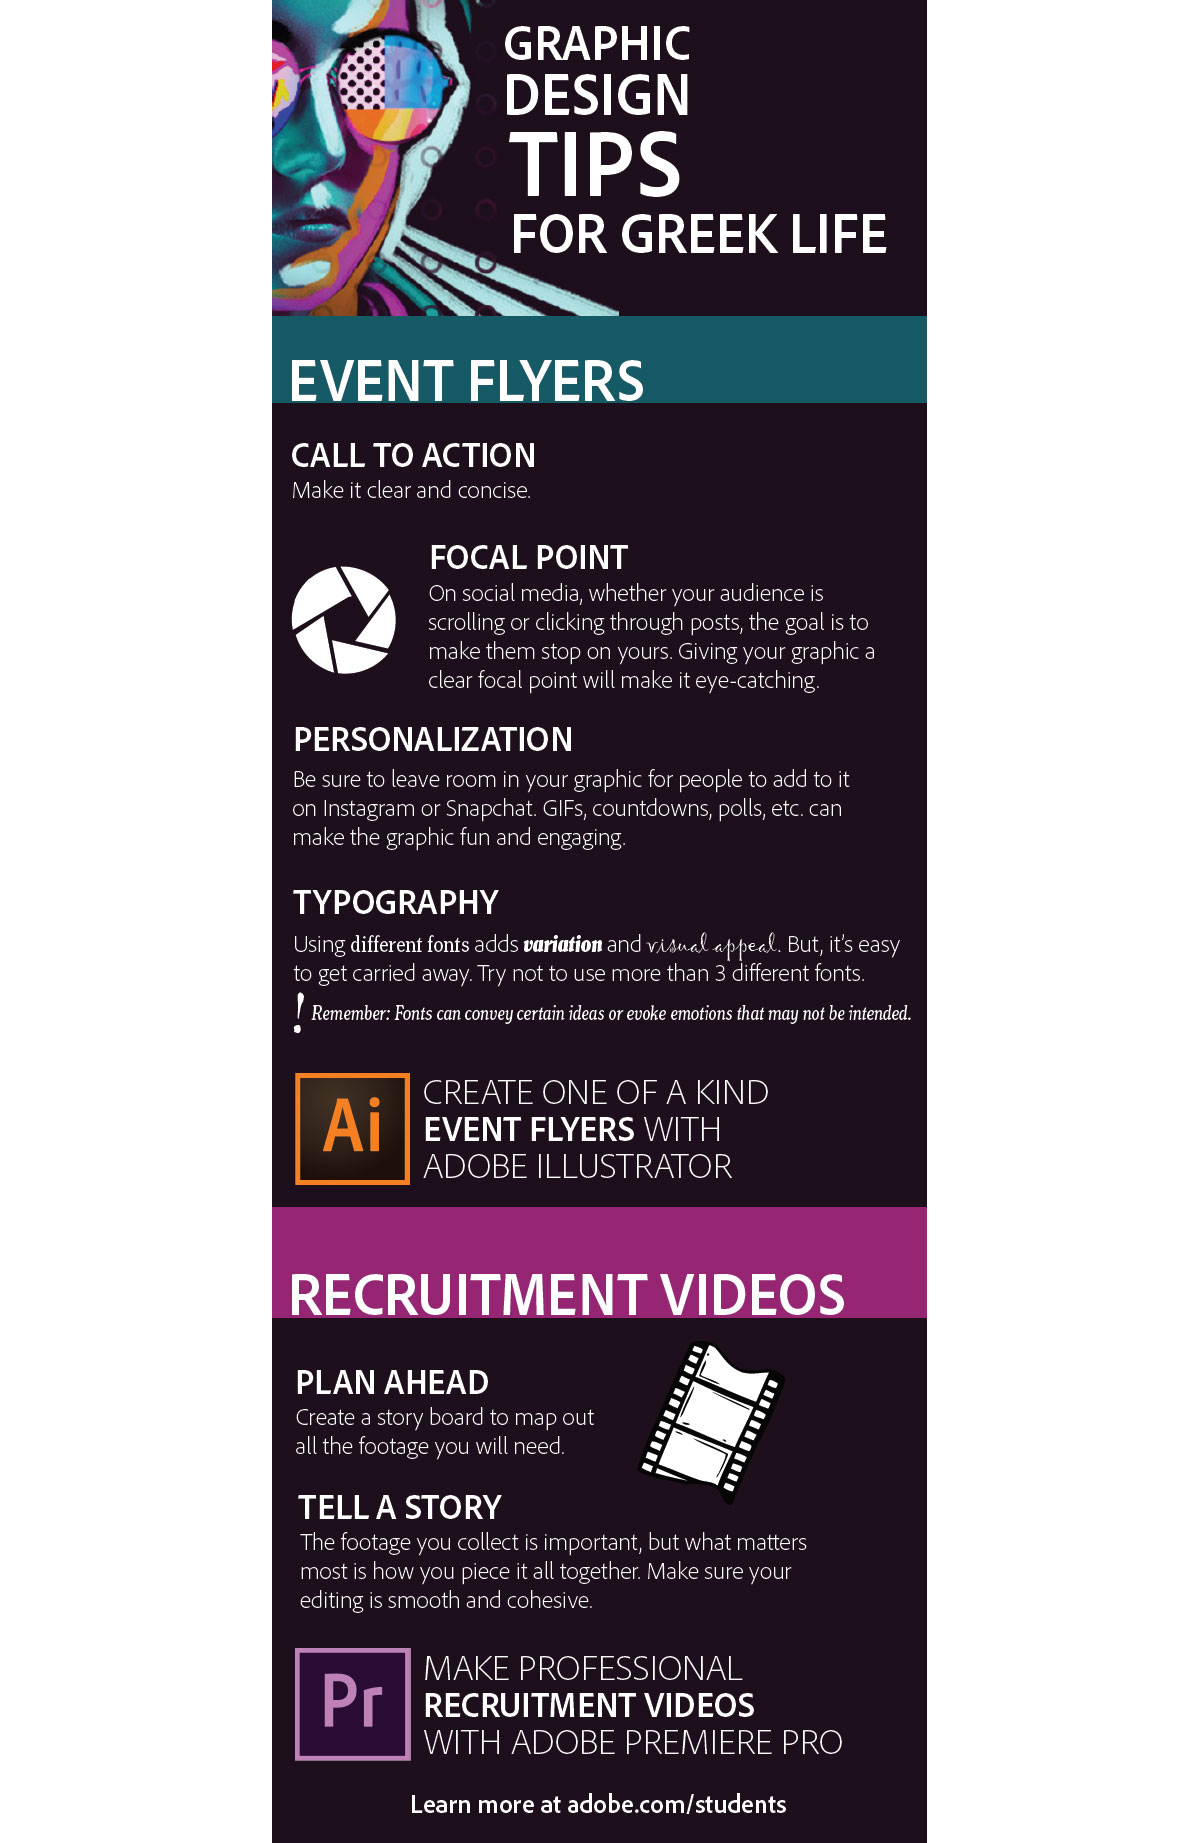 Graphic Design Tips for Sorority Event Flyers and Videos